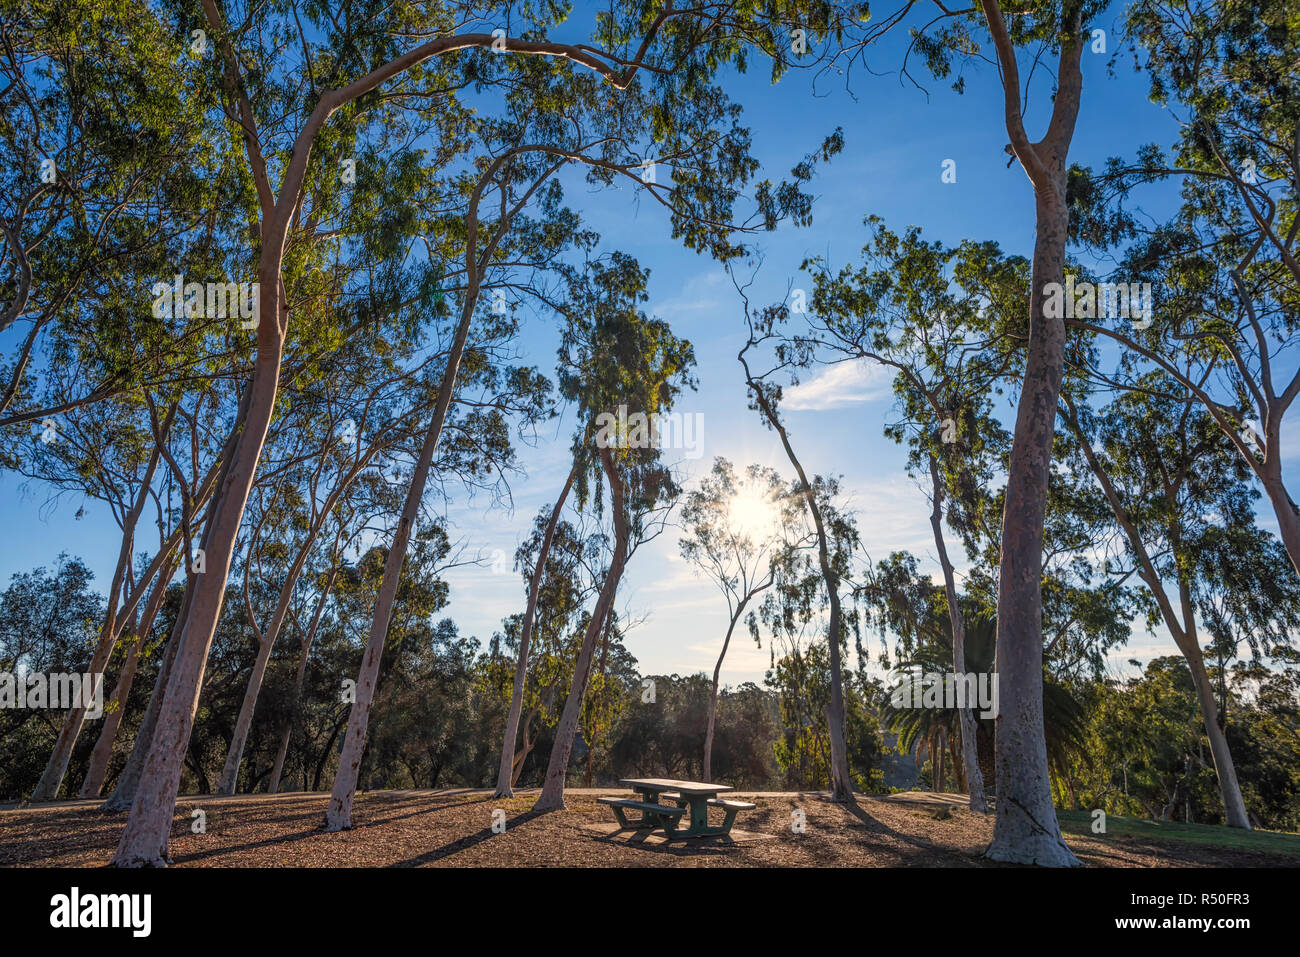 Grove of trees and a public bench with morning light. Balboa Park, San Diego, California, USA. Stock Photo